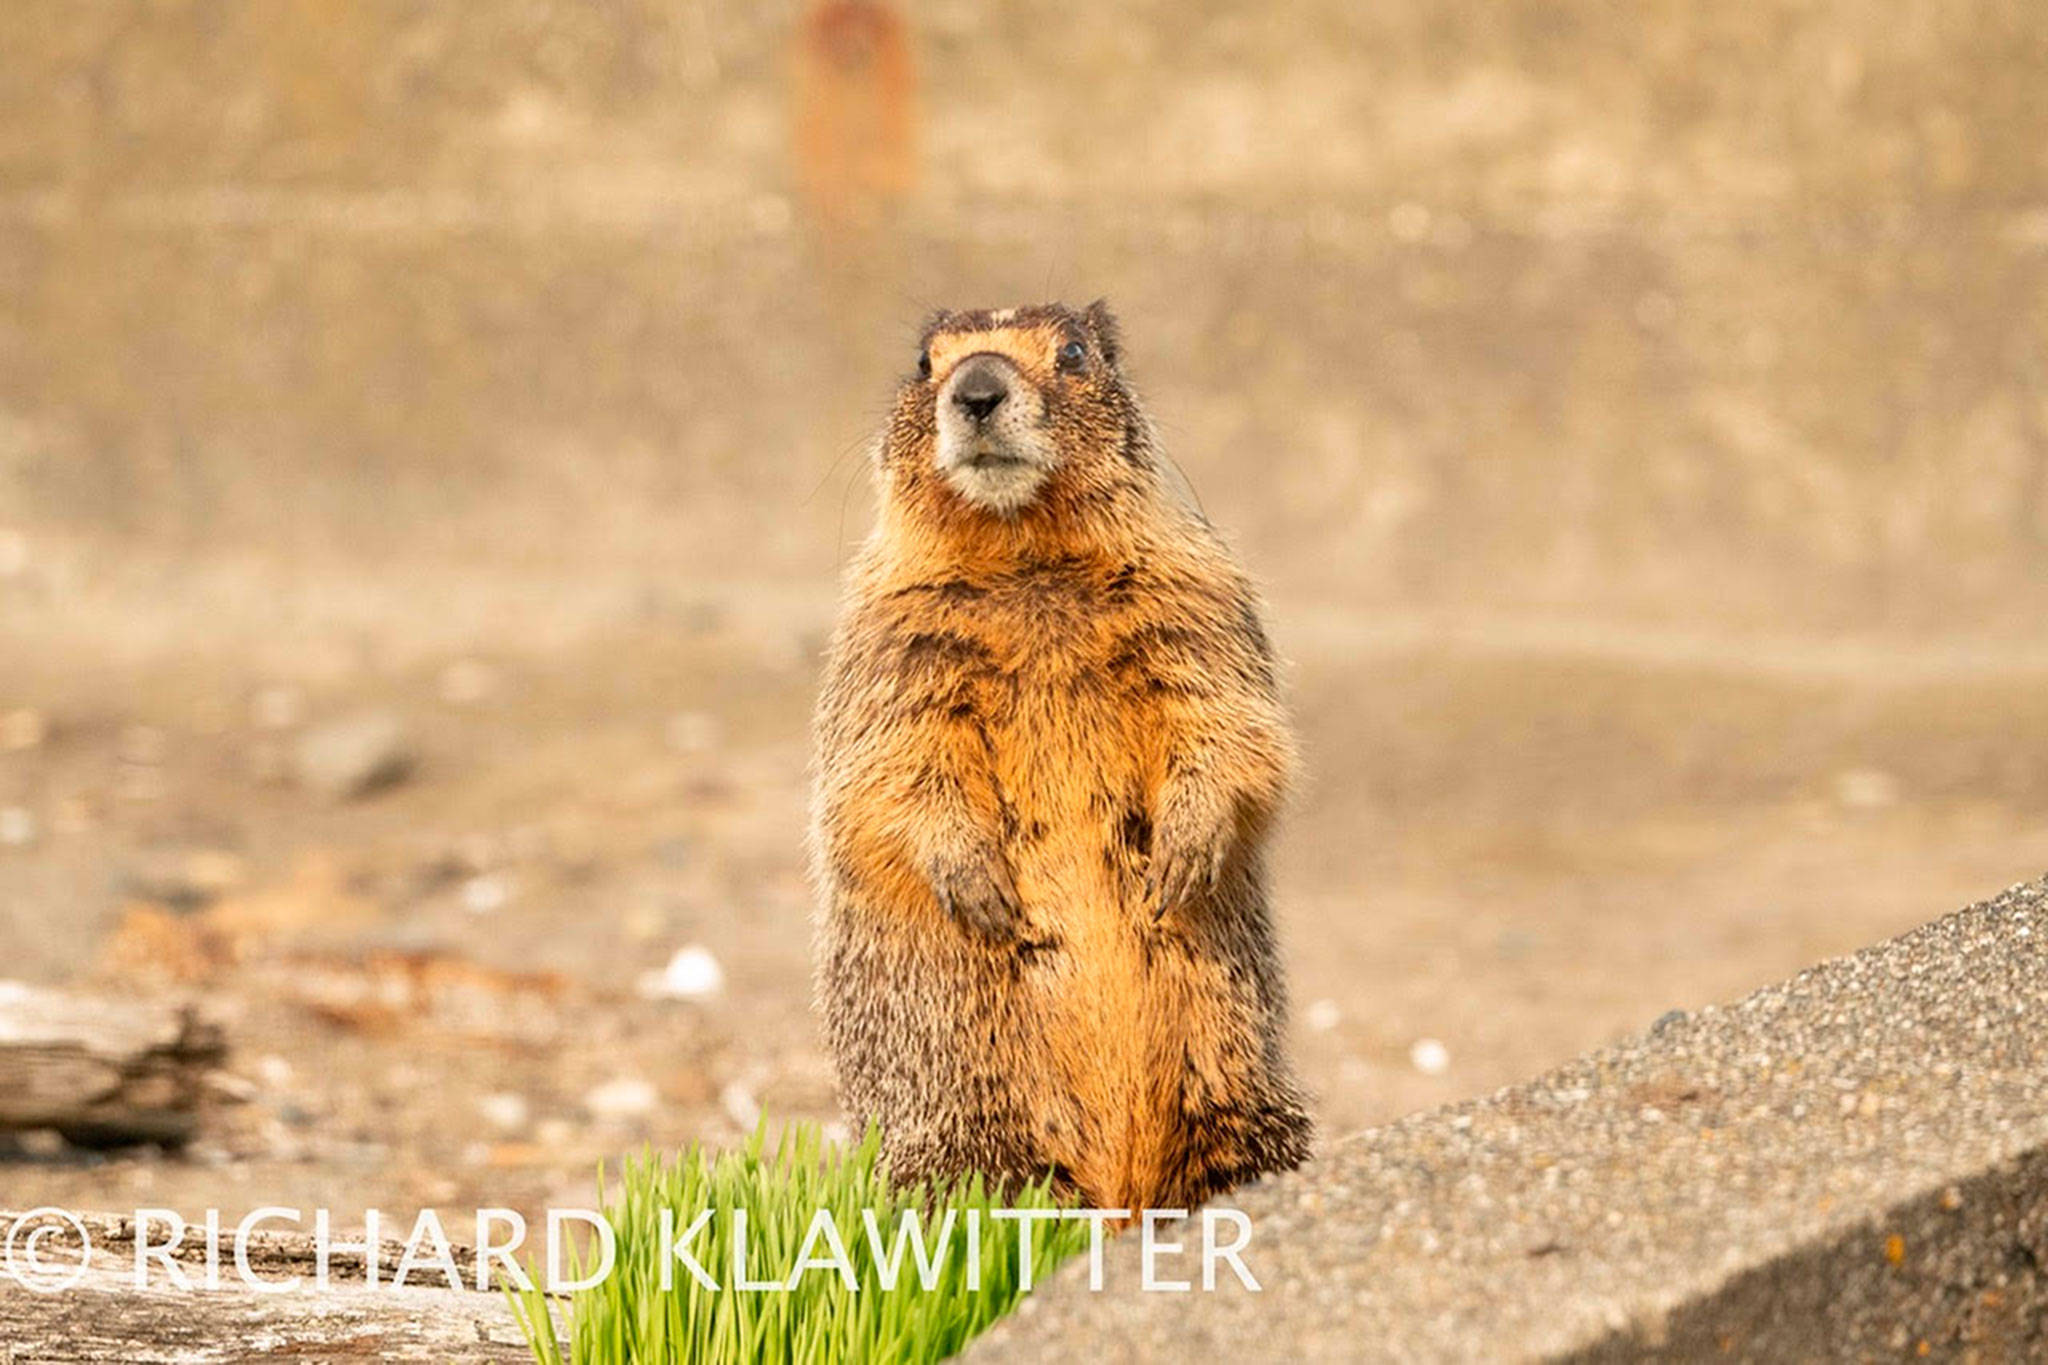 This yellow-bellied marmot now calls Sequim home after being spotted in the area in March. It's native to Eastern Washington and more arid climates. Photo courtesy Richard Klawitter